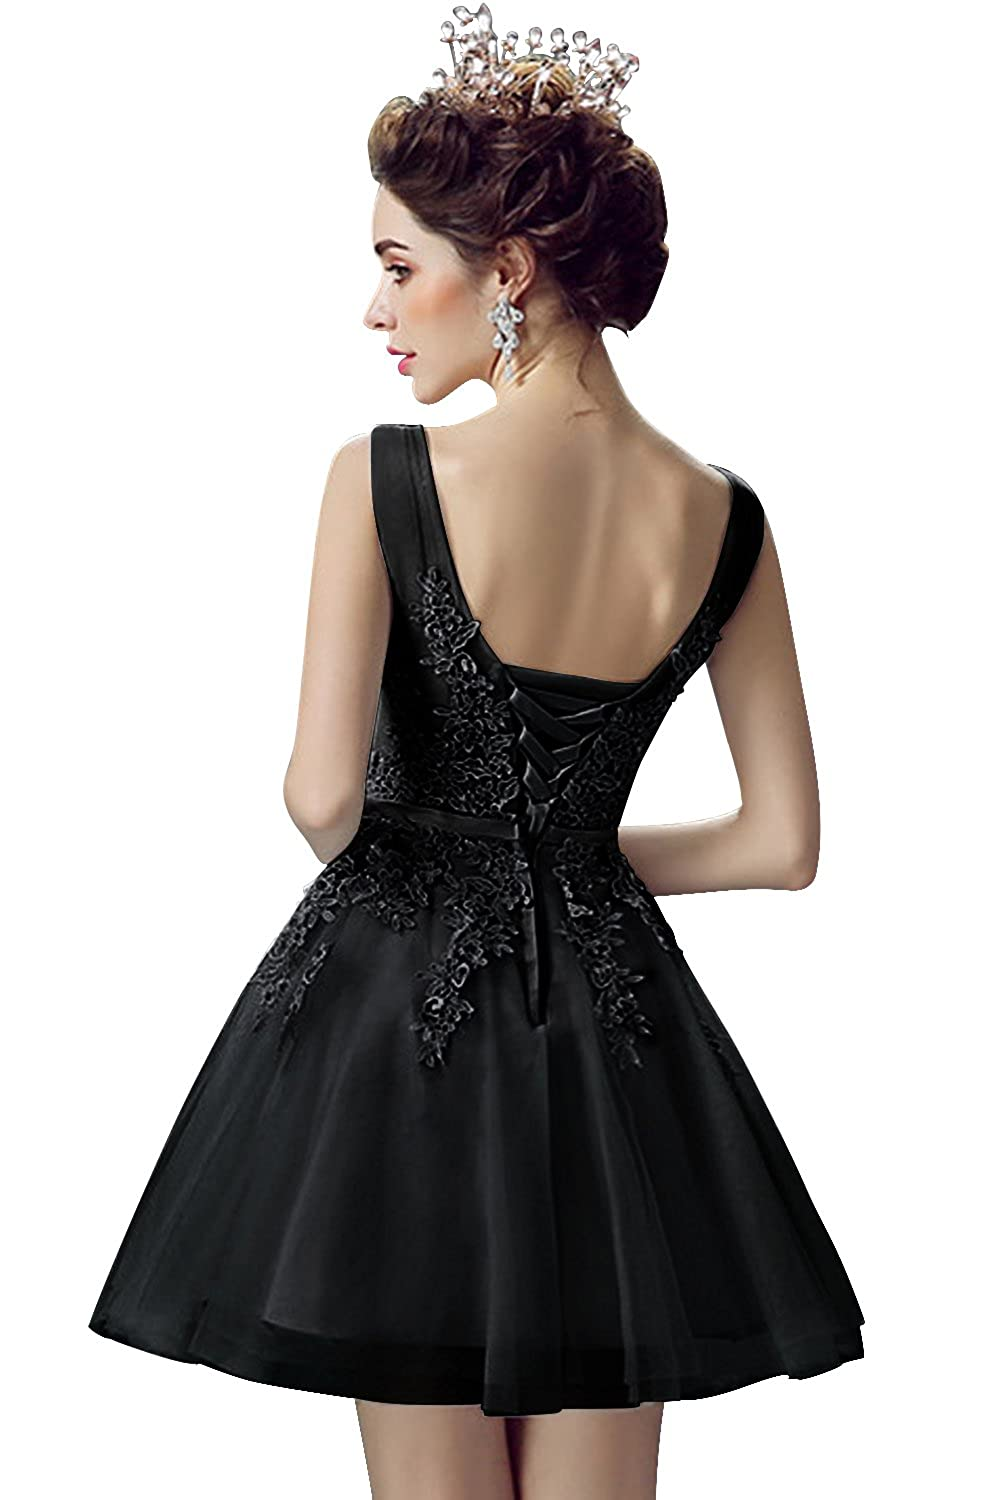 Babyonlinedress Tulle Lace Applique Junior s Formal Cocktail Homecoming  Dresses at Amazon Women s Clothing store  a096e65ae505